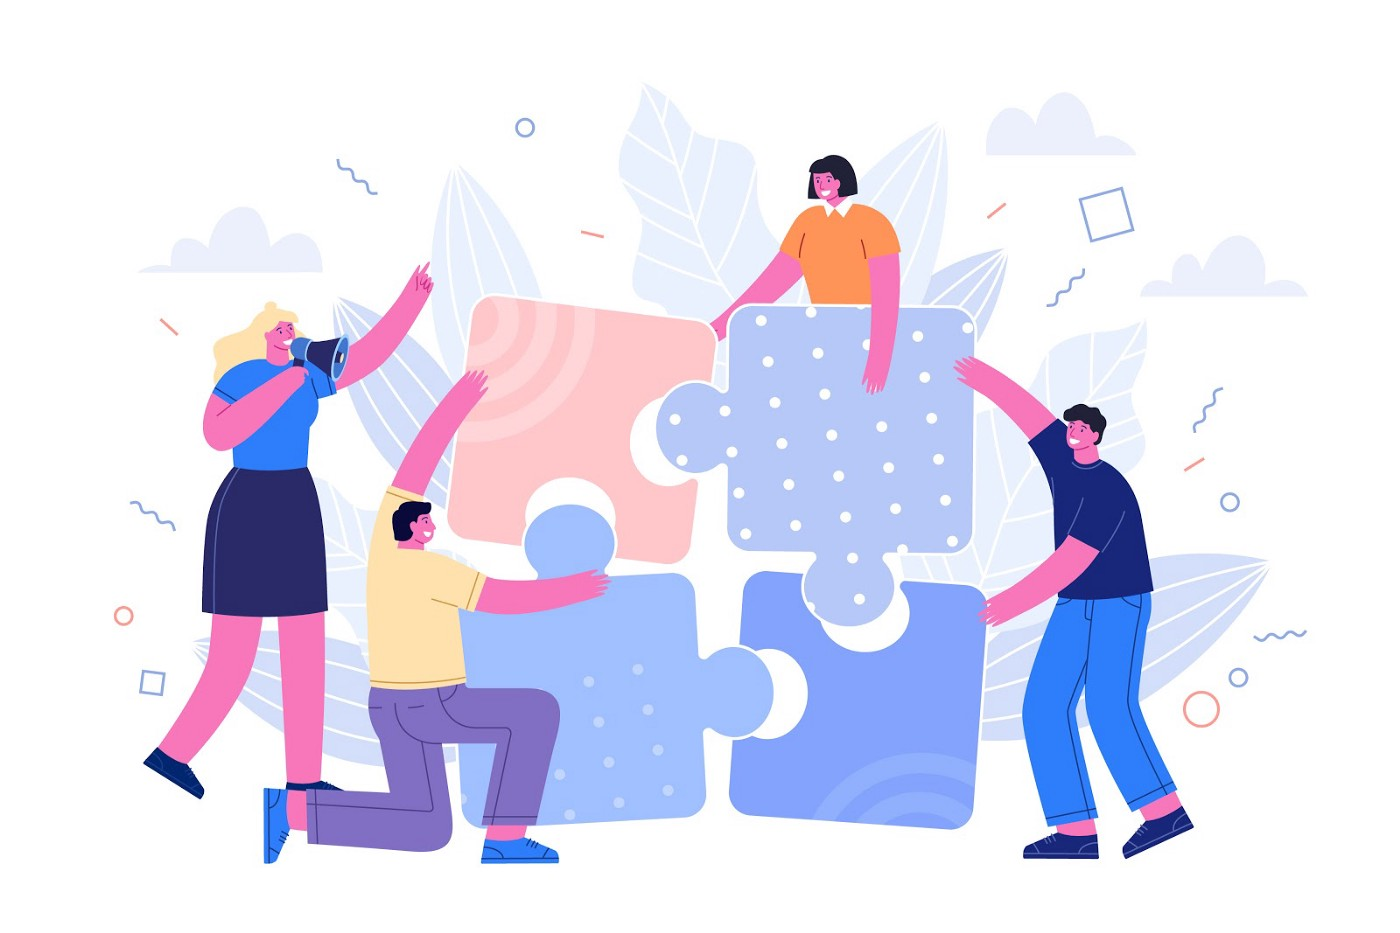 Illustration of folks assembling a jigsaw puzzzle.